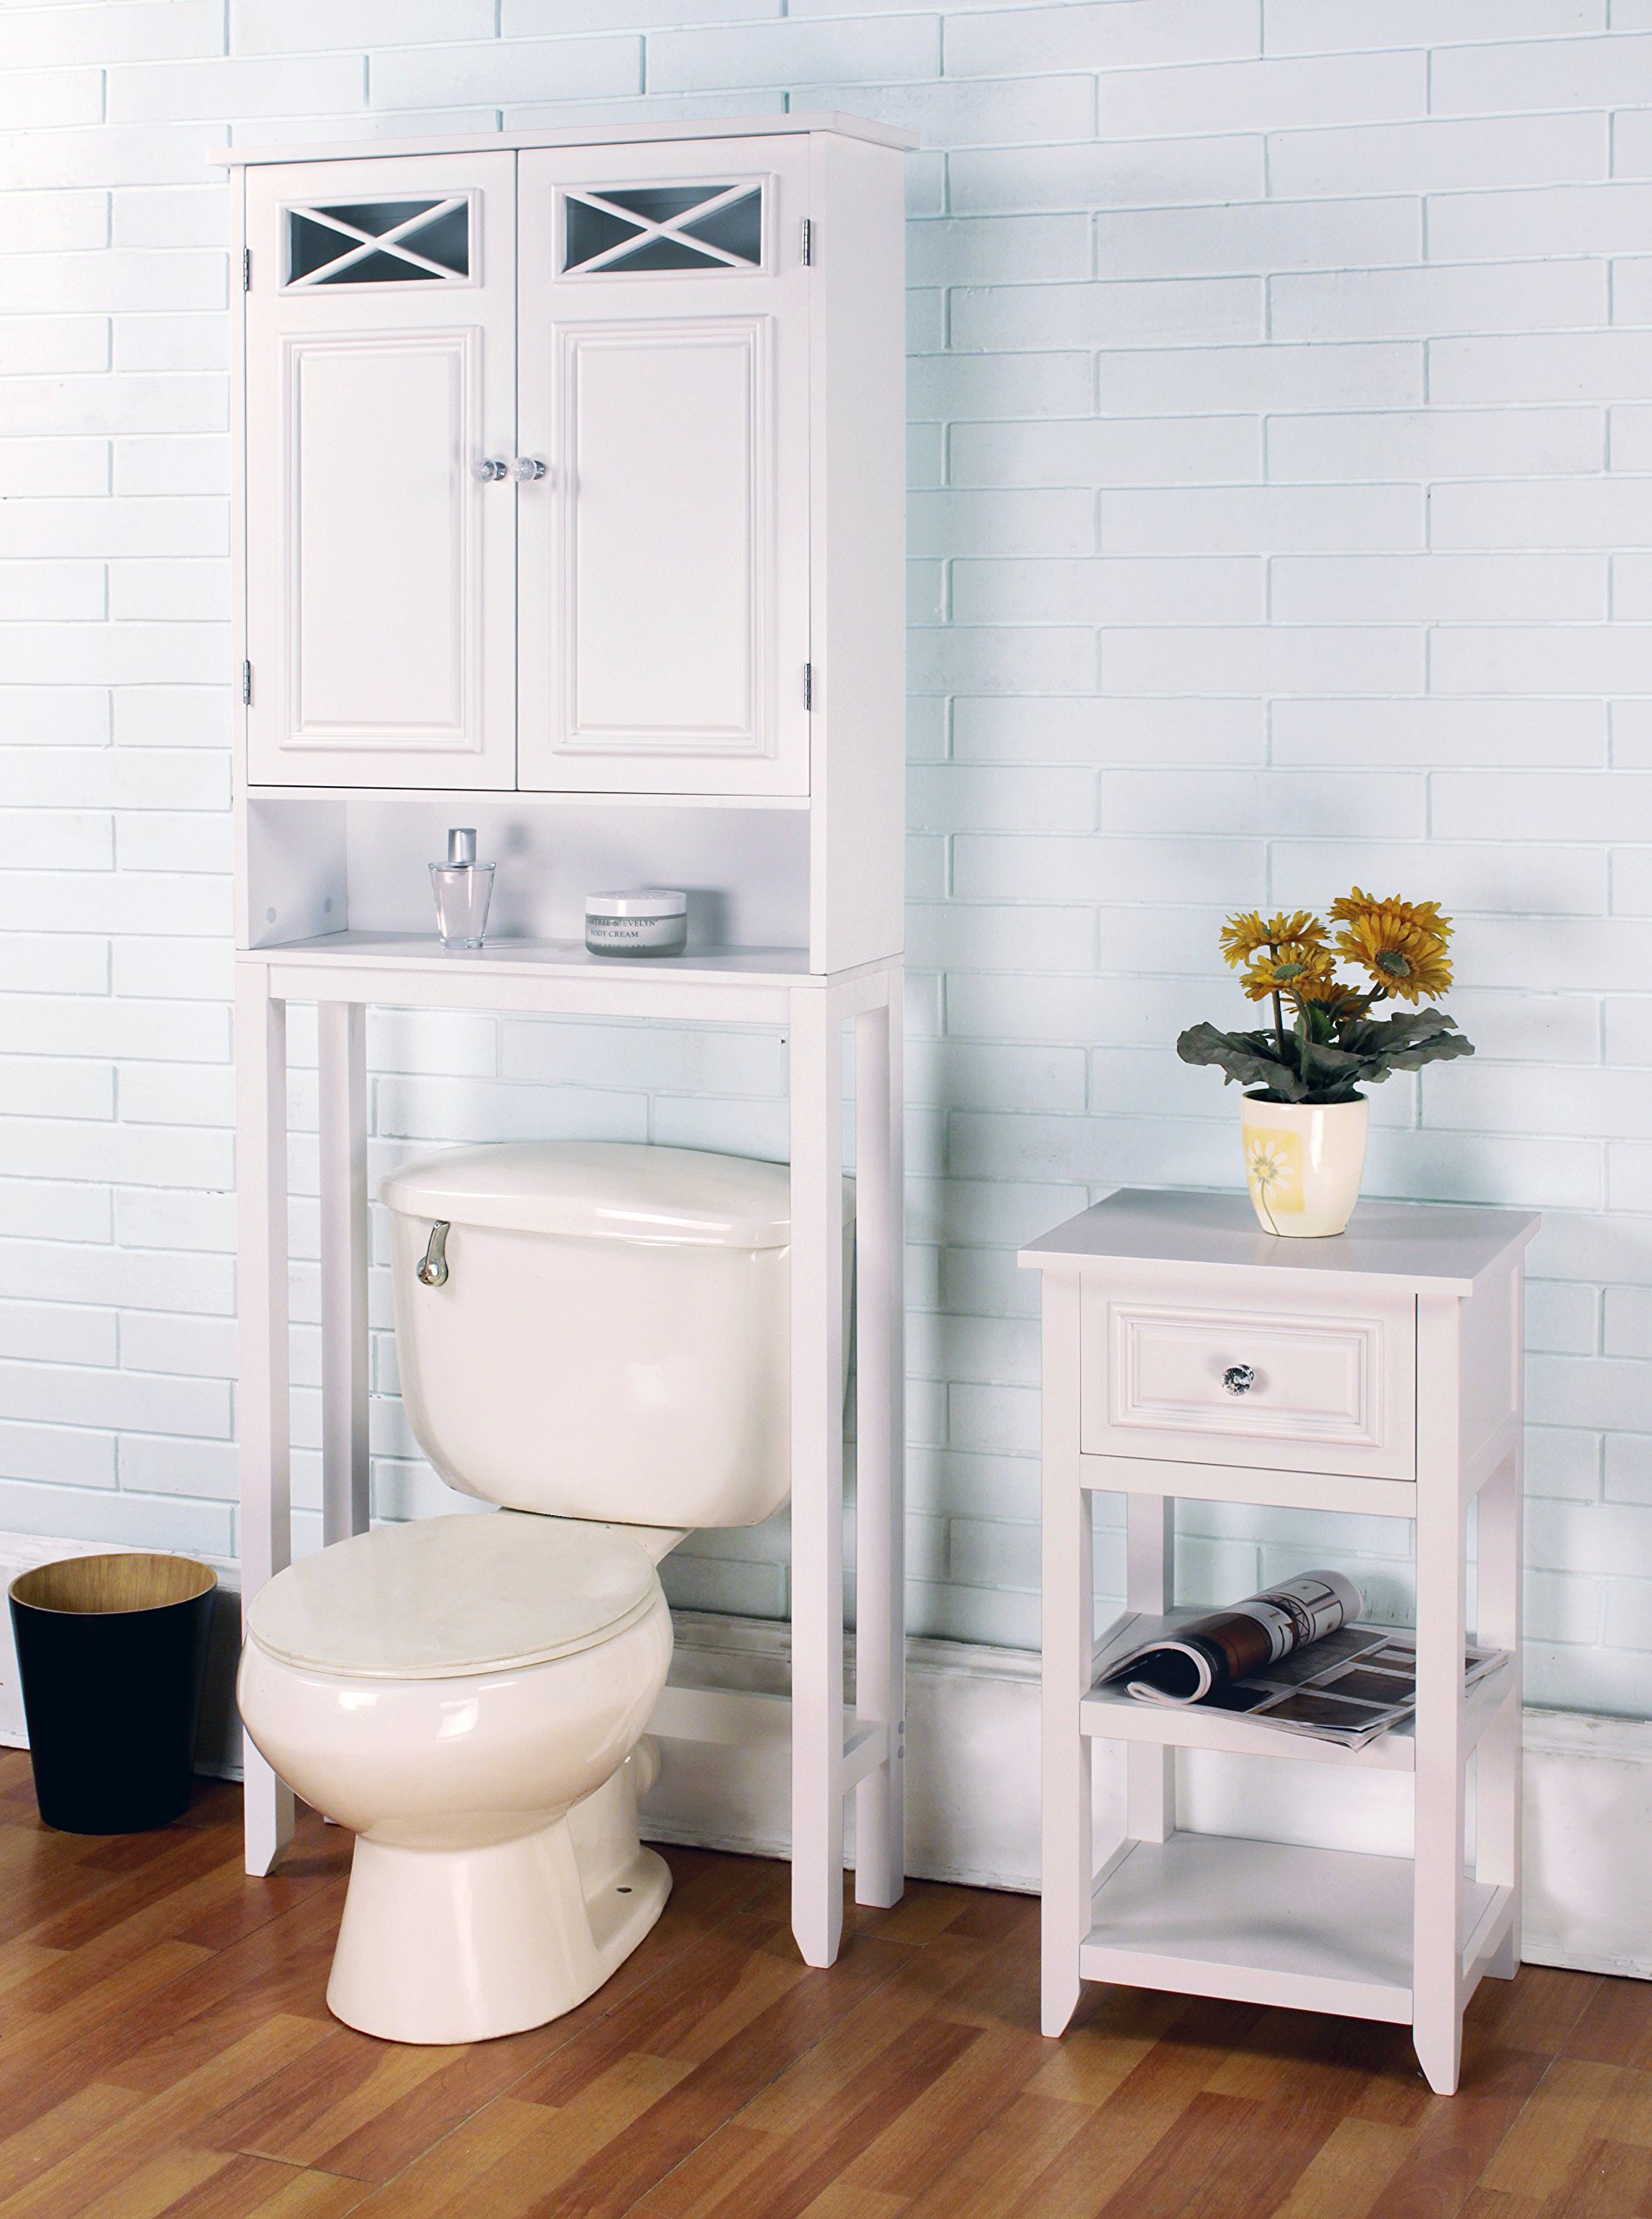 Elegant Home Fashions Dawson Collection Shelved Bathroom Space-Saver with Storage Cubby, White by Elegant Home Fashions (Image #4)